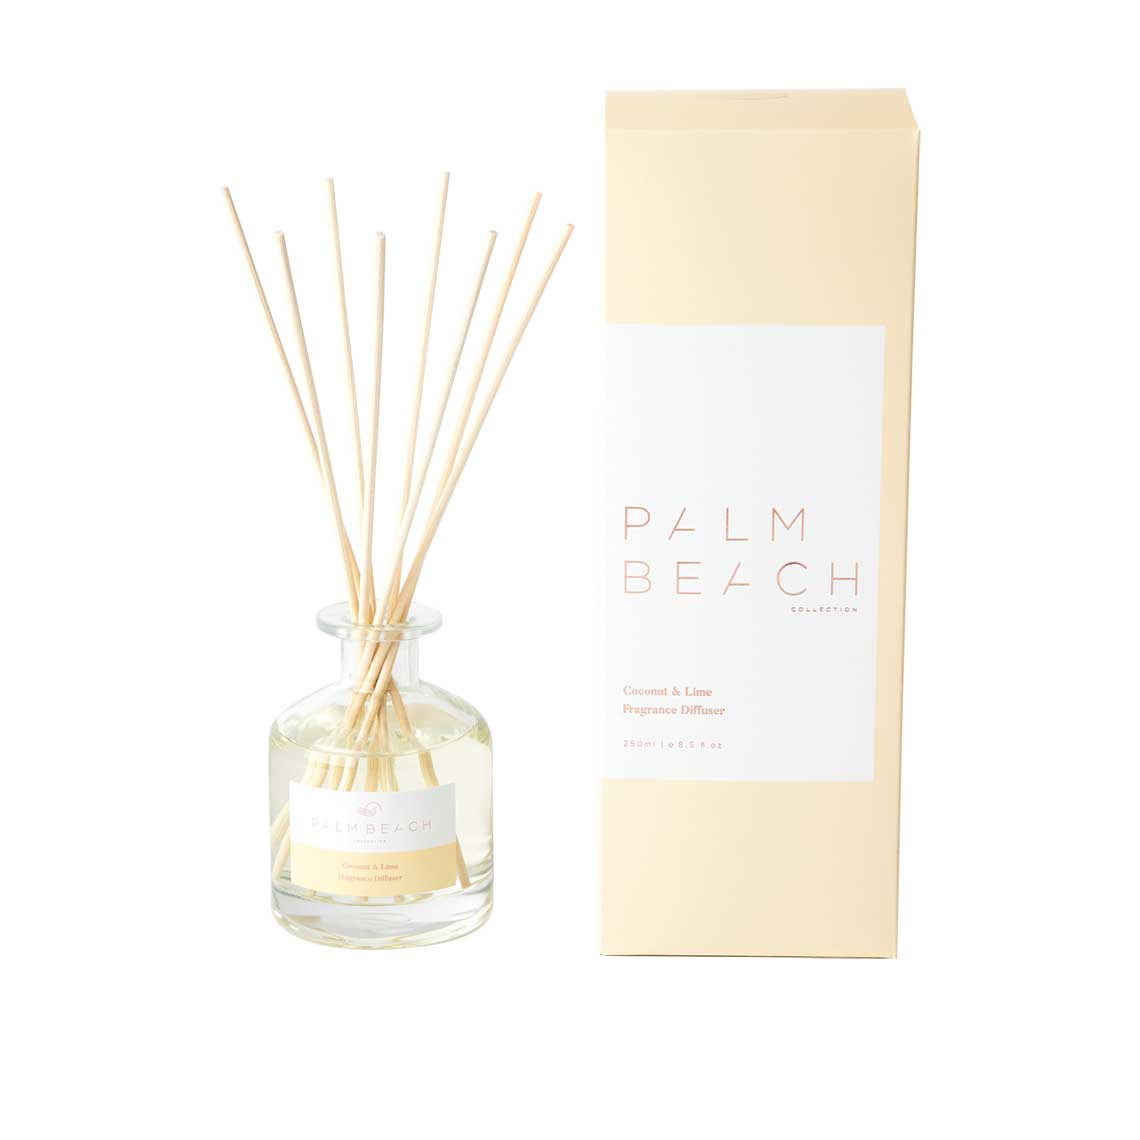 Palm Beach Collection | Coconut & Lime 250ml Fragrance Diffuser | Salt & Sand Women's Clothing & Accessories Inverloch